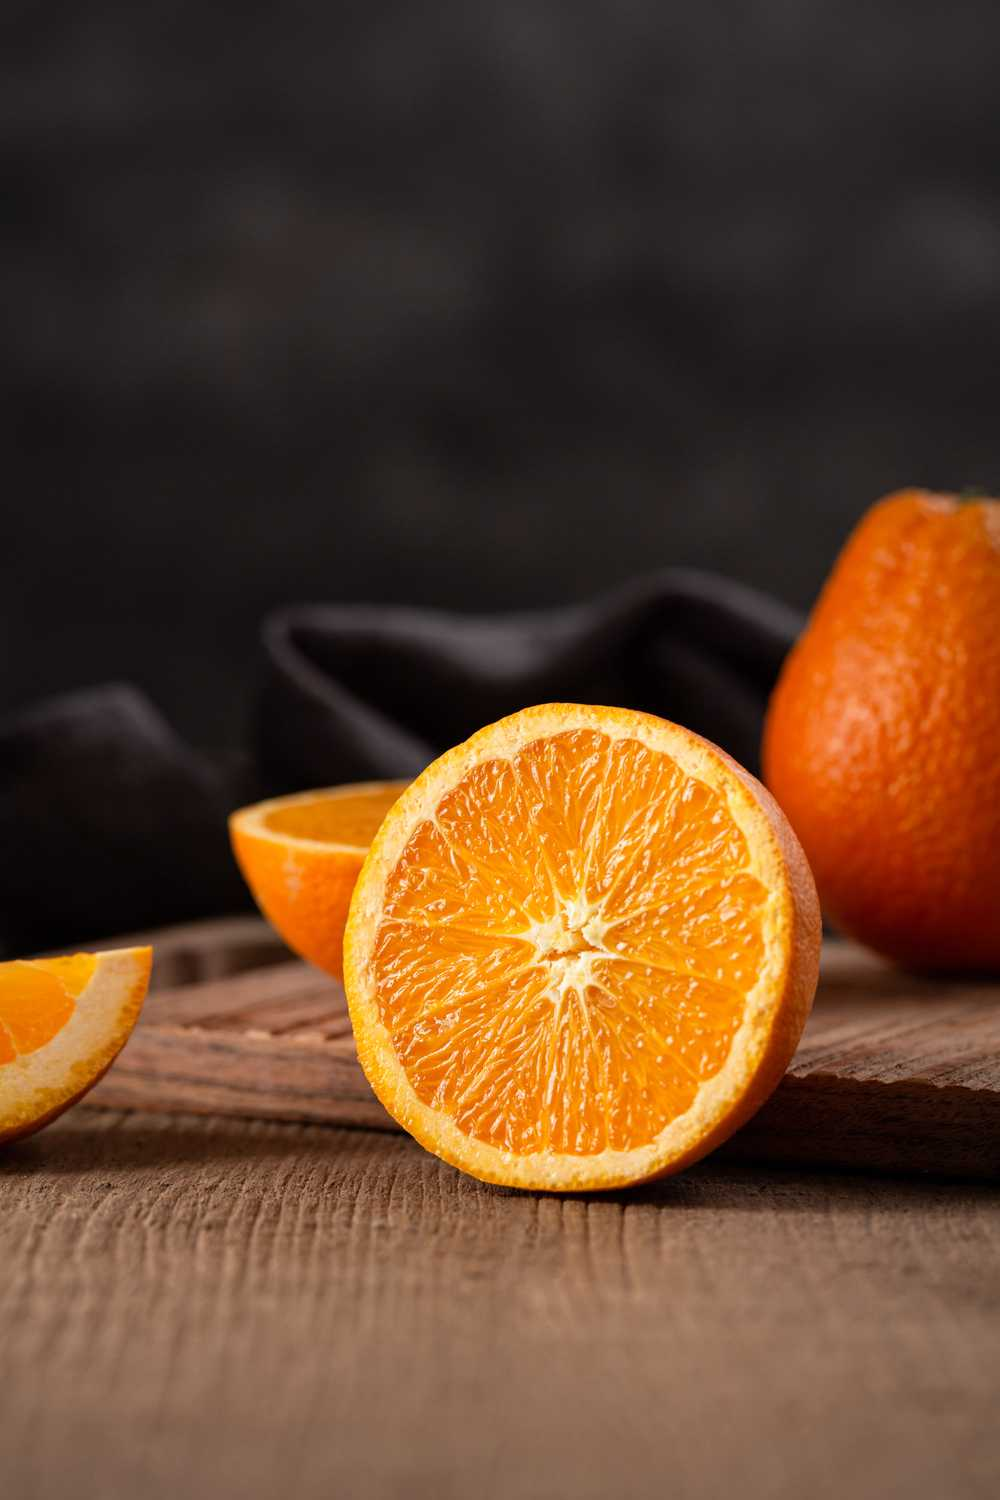 sliced orange fruit on brown wooden table